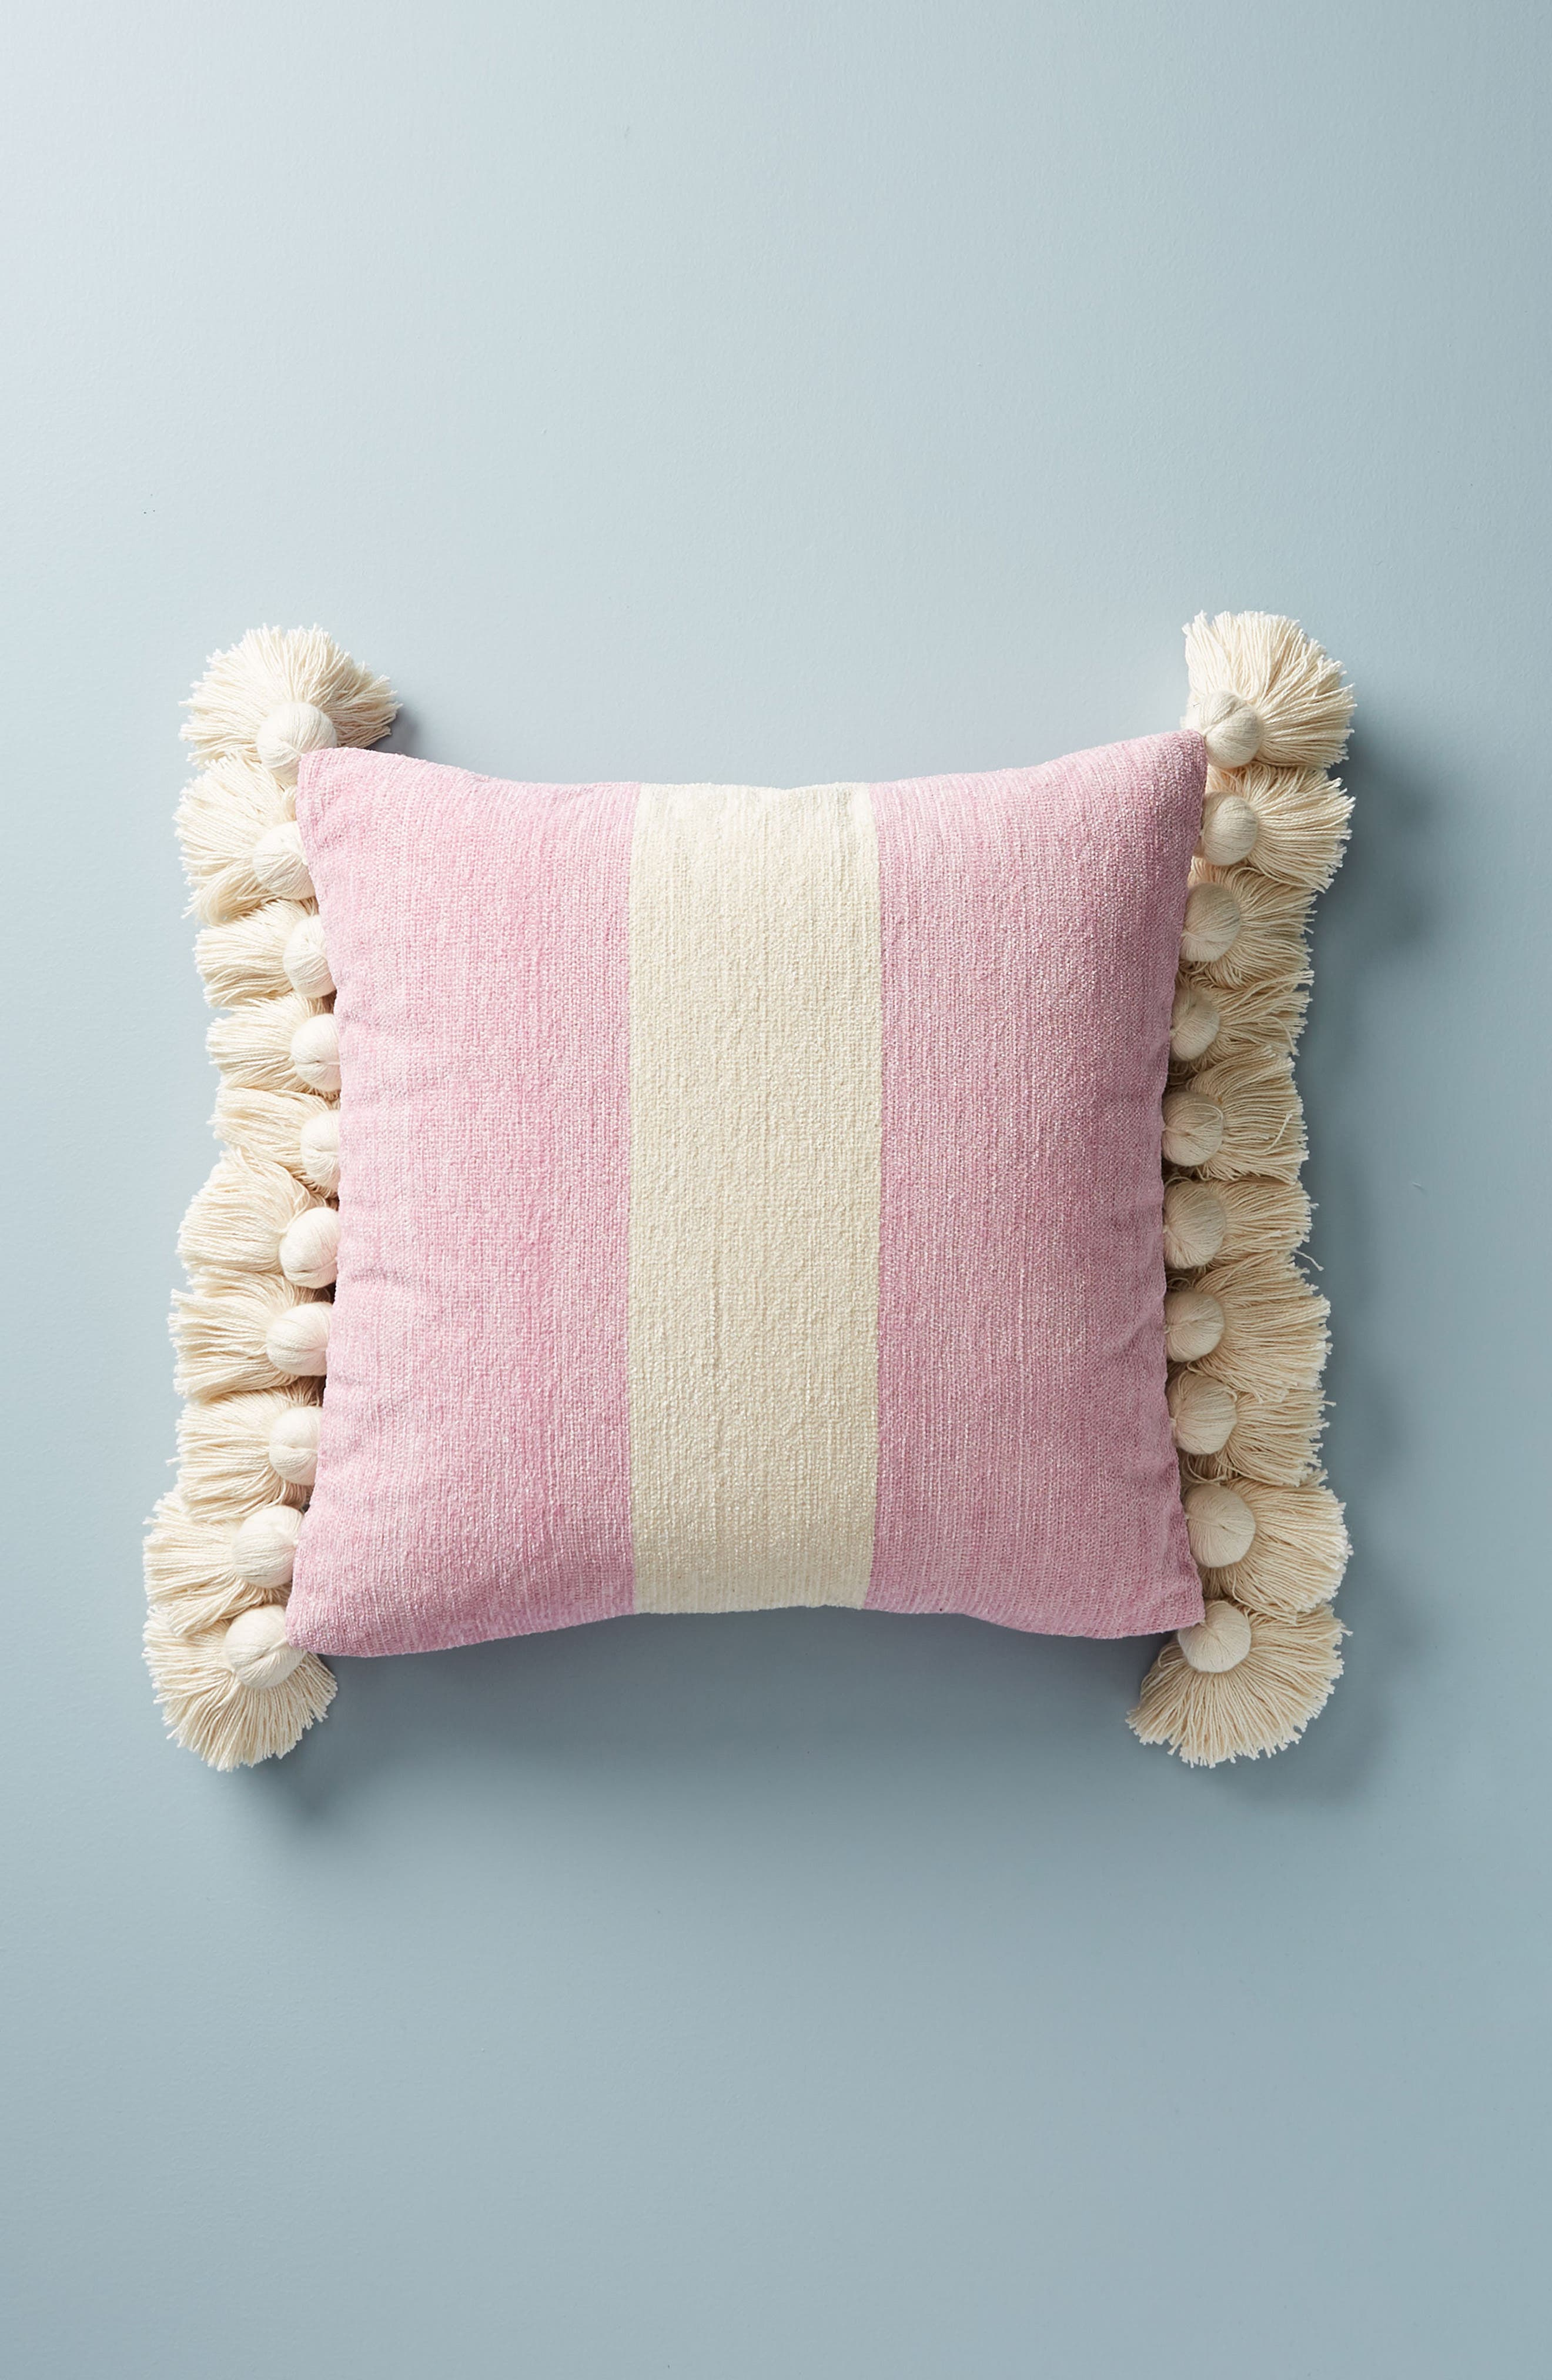 Anthropologie Nadia Tassel Accent Pillow